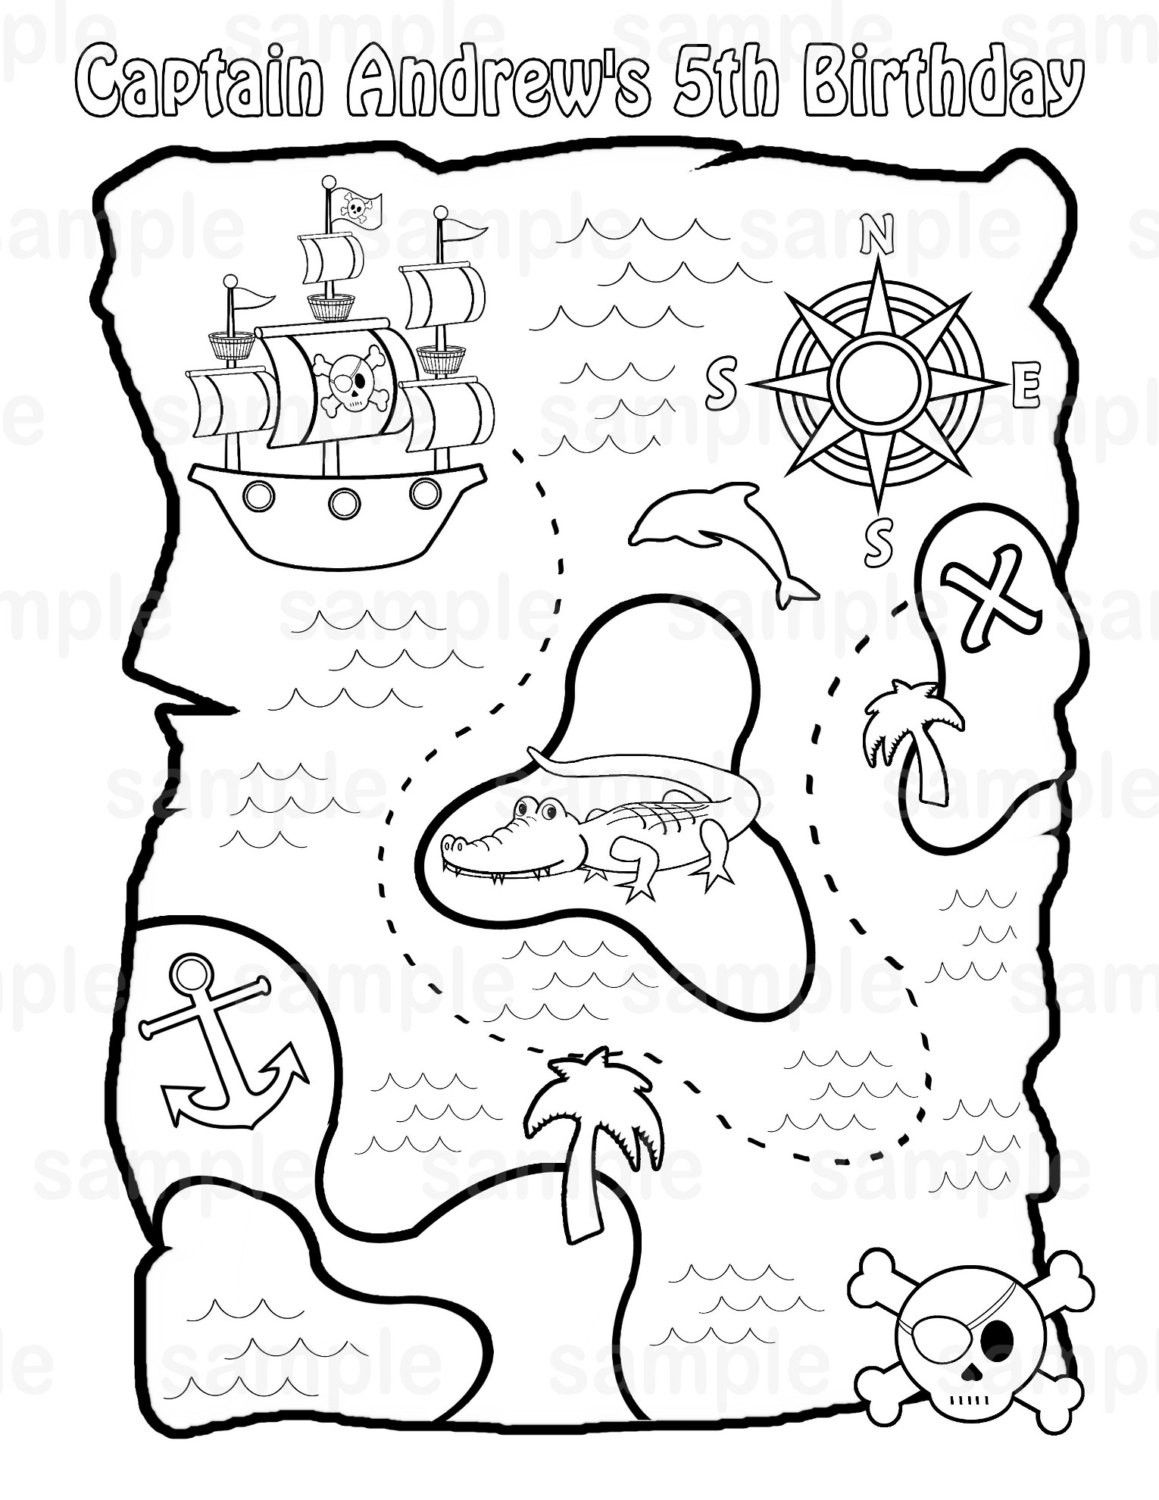 pirate map coloring page printable pirate treasure map for kids pirate treasure map page coloring pirate